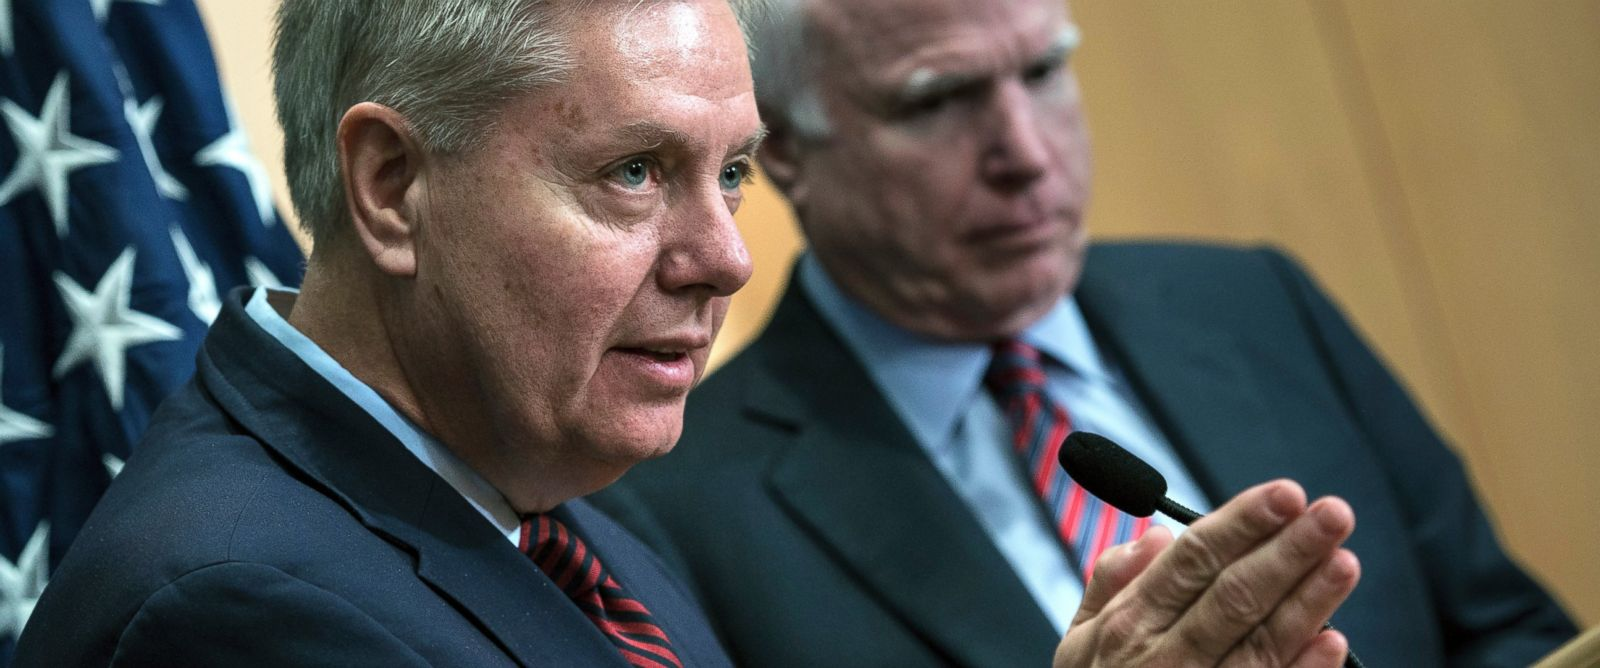 PHOTO: Senator Lindsey Graham speaks near Senator John McCain during a press conference at the David Citadel hotel, Jan. 3, 2014, in Jerusalem.